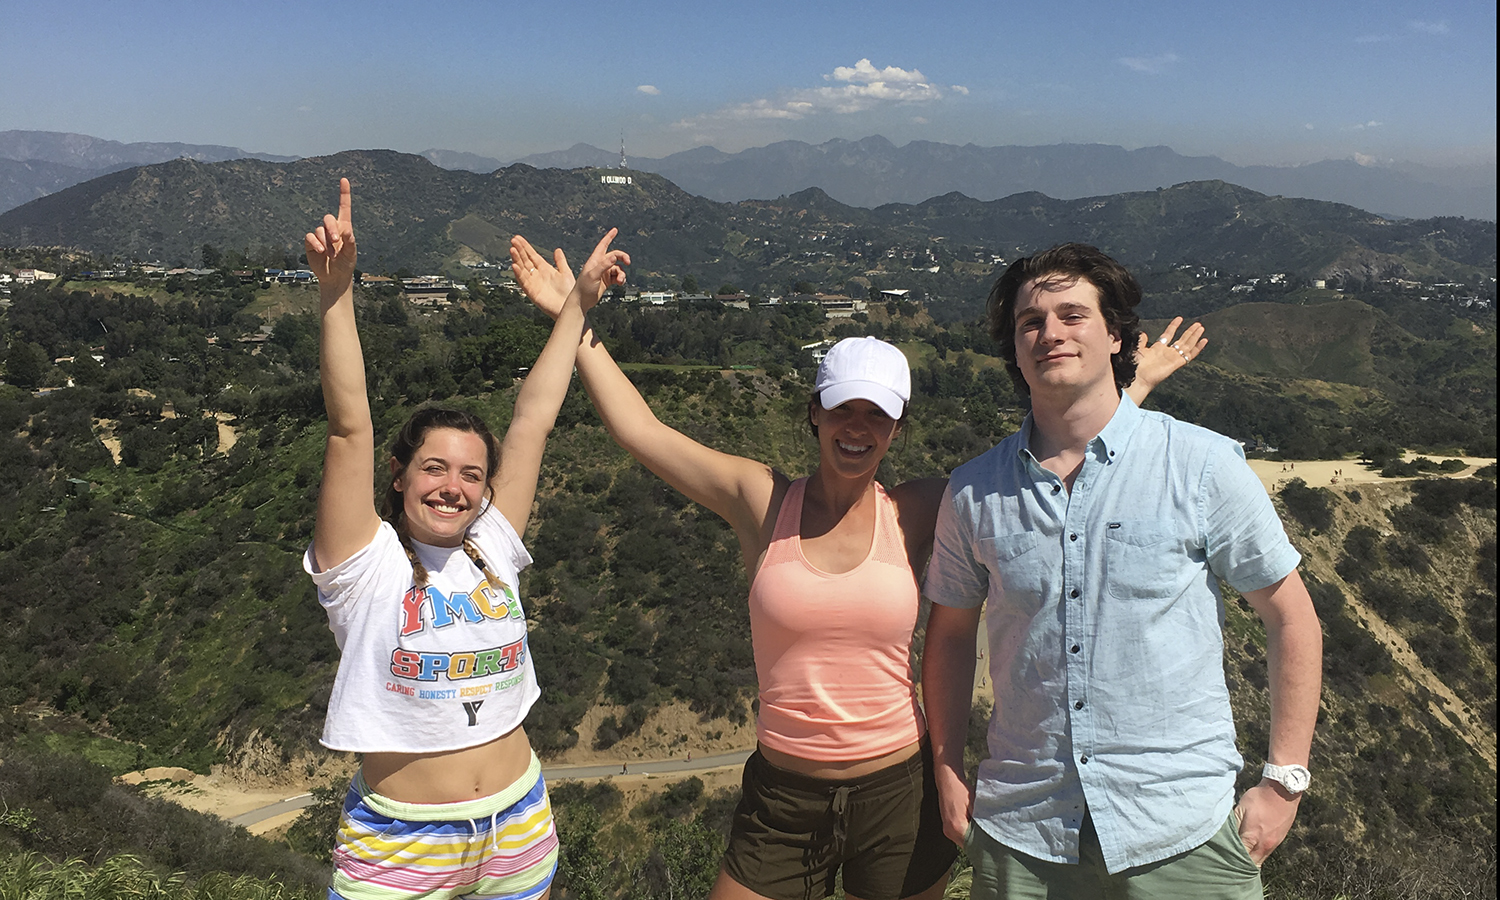 Gaby Milano '19, Cassidy DiPaola '19 and Sandro Carboni  '19 post for a photo after climbing Runyon Canyon in Hollywood, California!